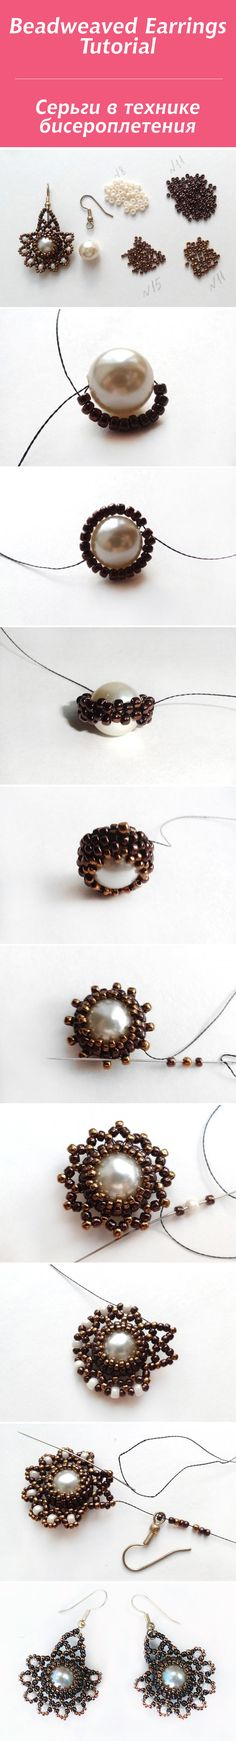 Beadweaved Earrings Tutorial